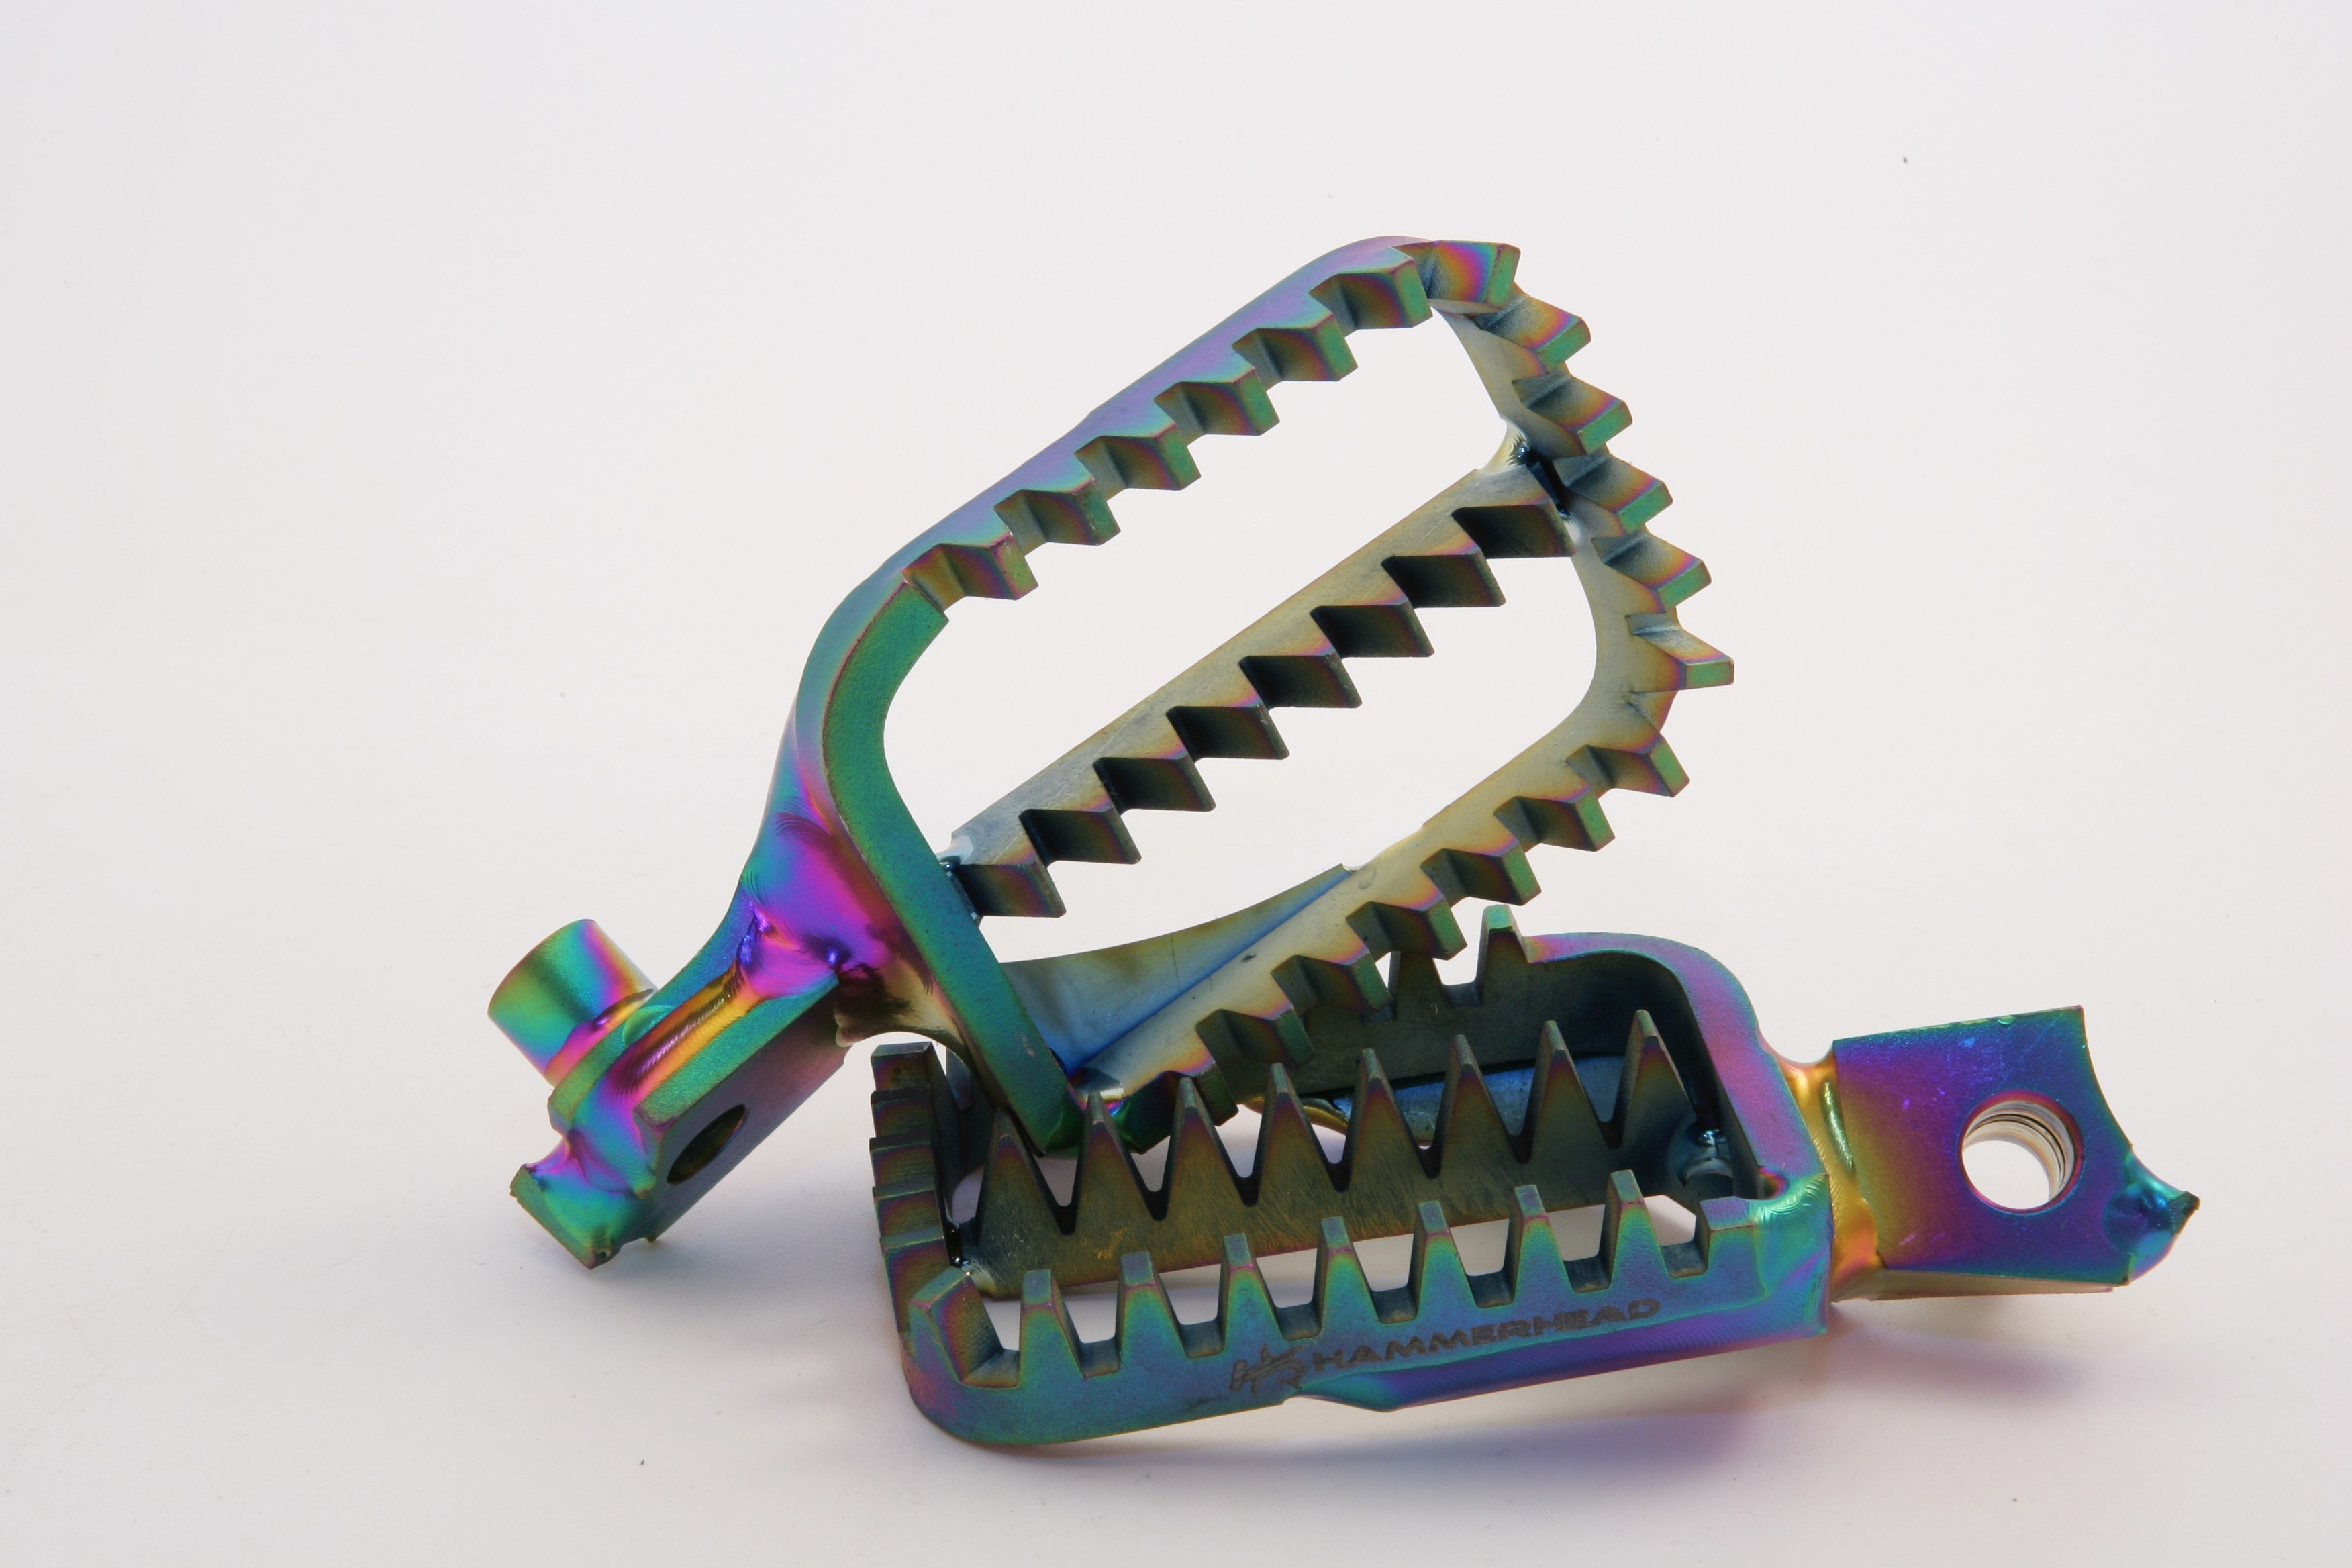 PARAGON Titanium Foot Pegs - Kawasaki (OIL SLICK)